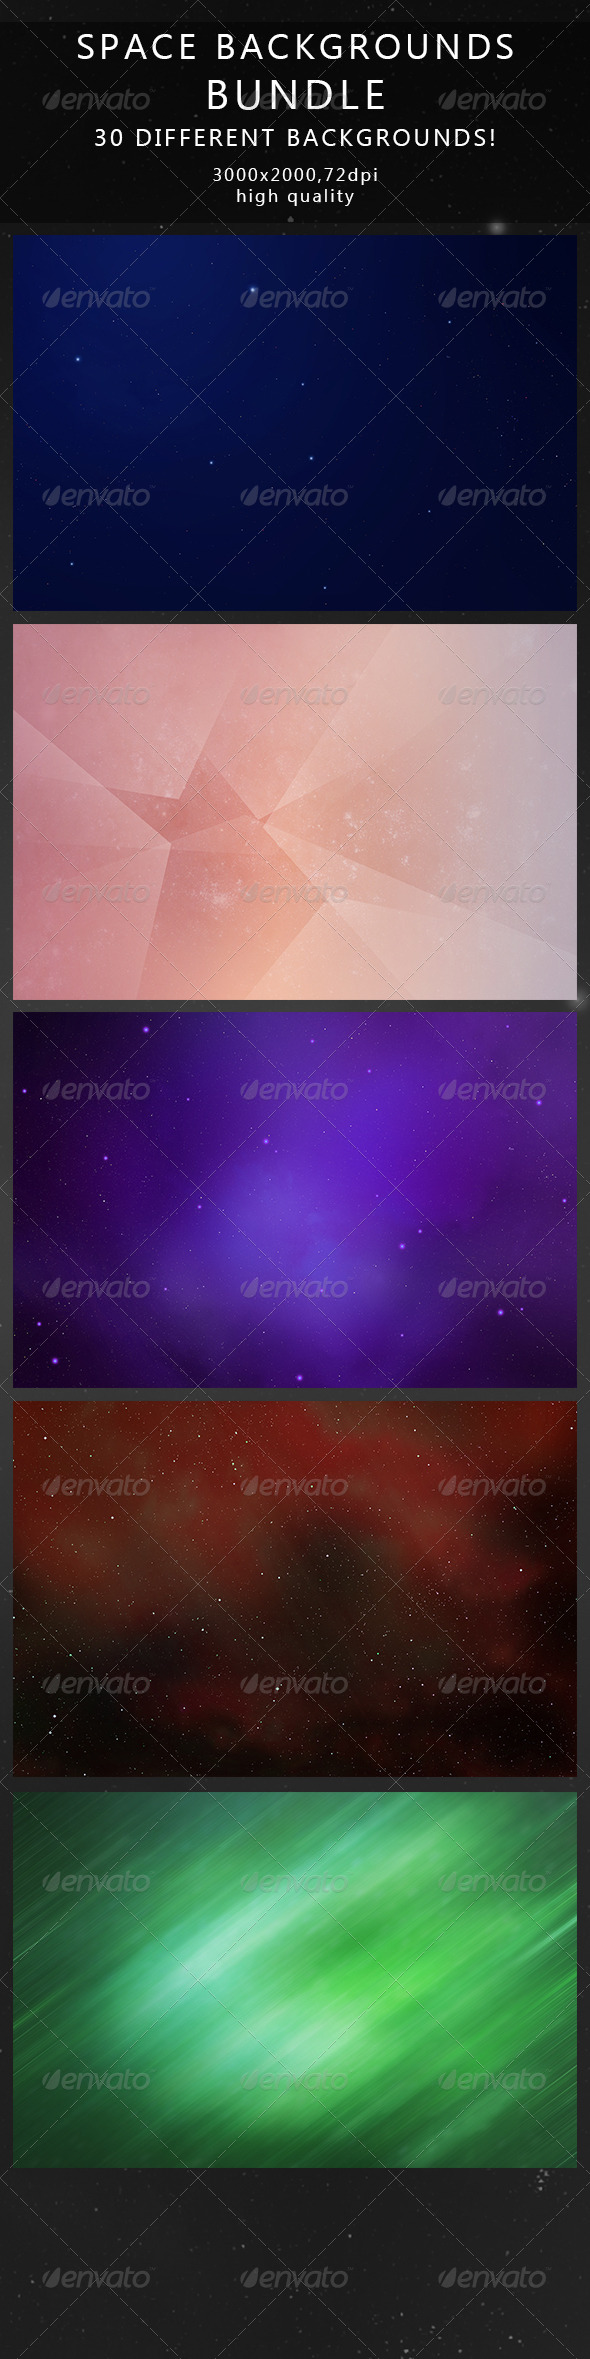 Space Backgrounds Bundle - Abstract Backgrounds